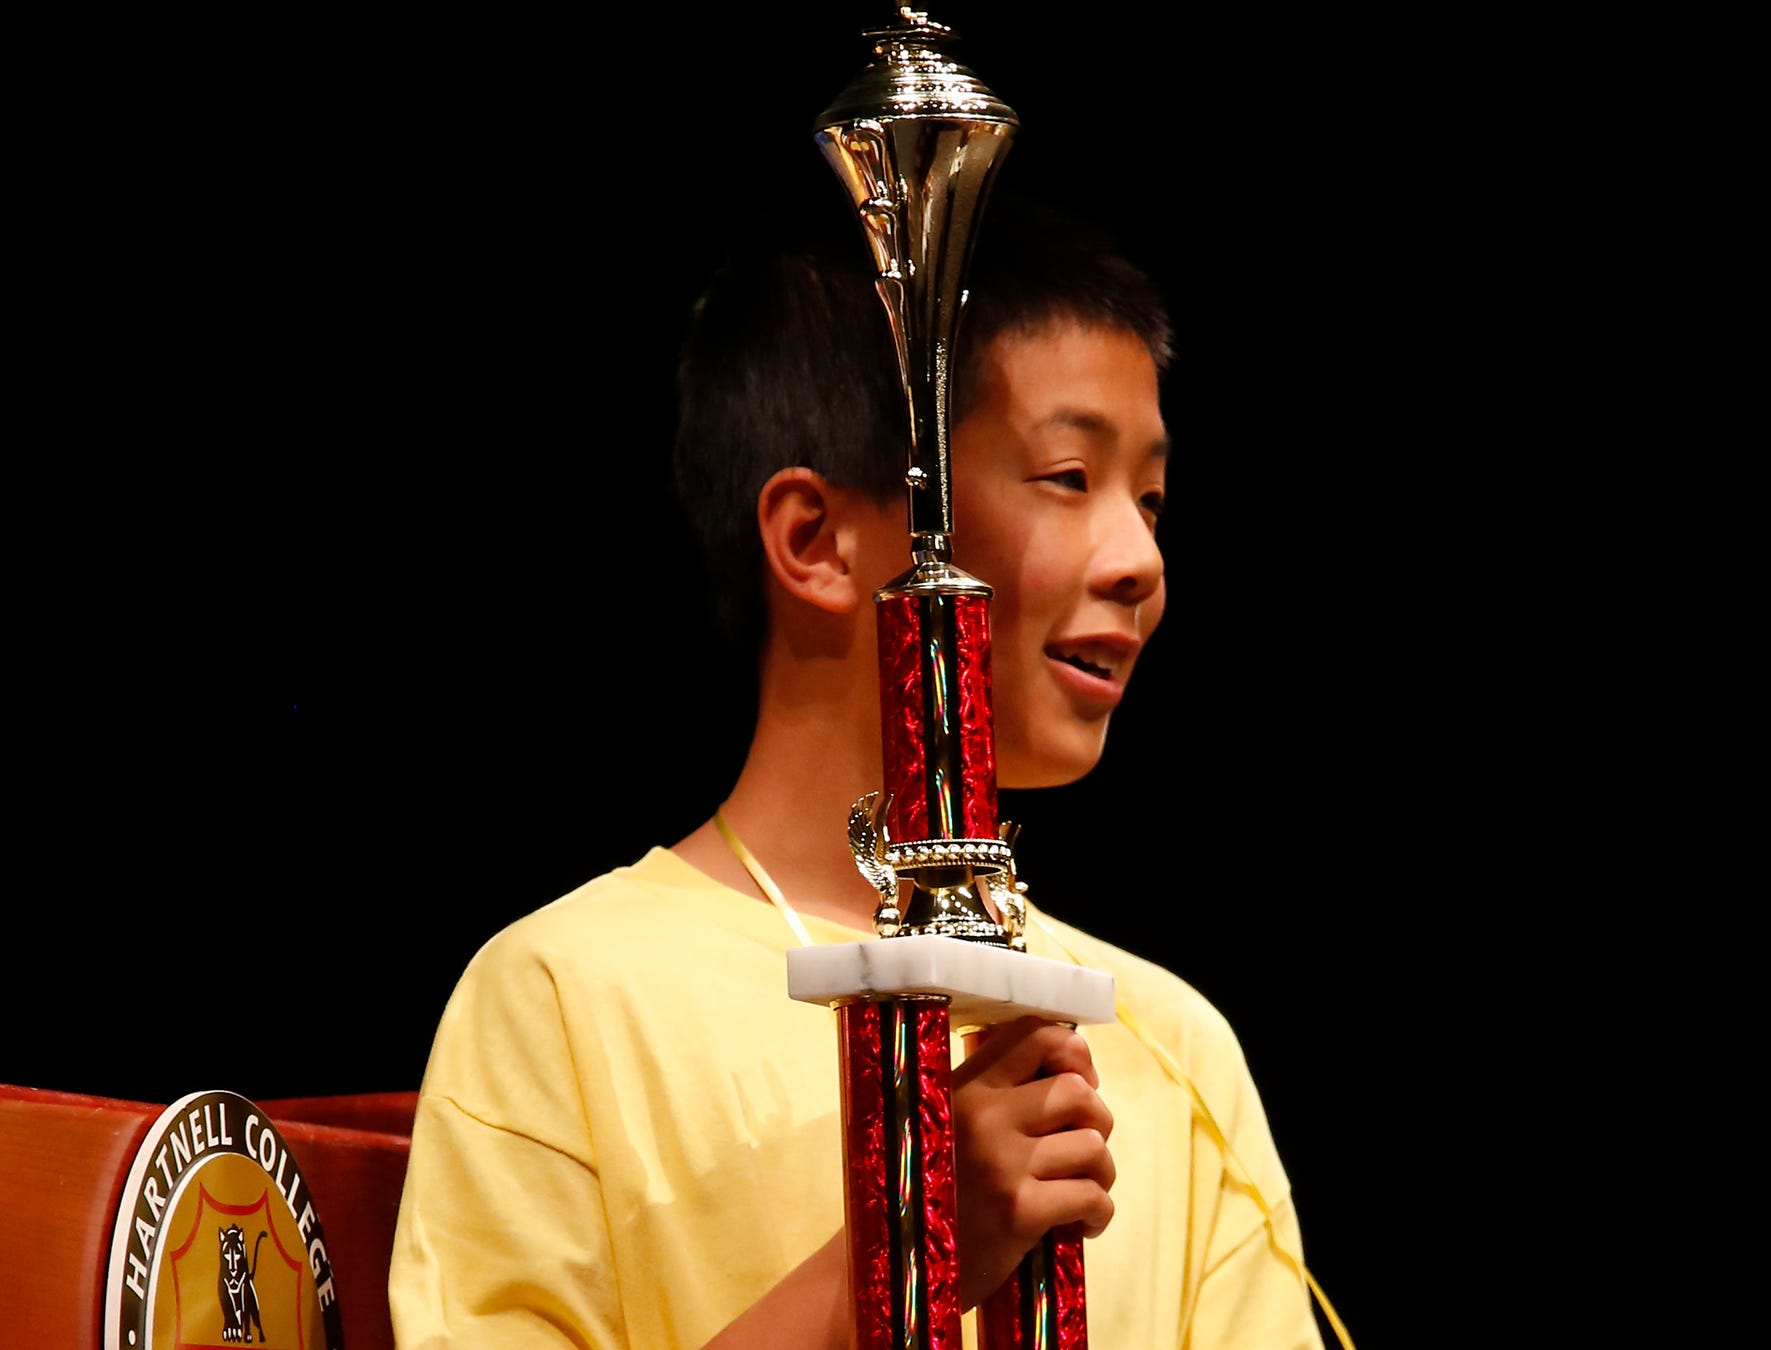 Washington Middle School eighth-grader Samuel Low holds the trophy after winning the Monterey County Office of Education's Countywide Spelling Bee Championship Finals.